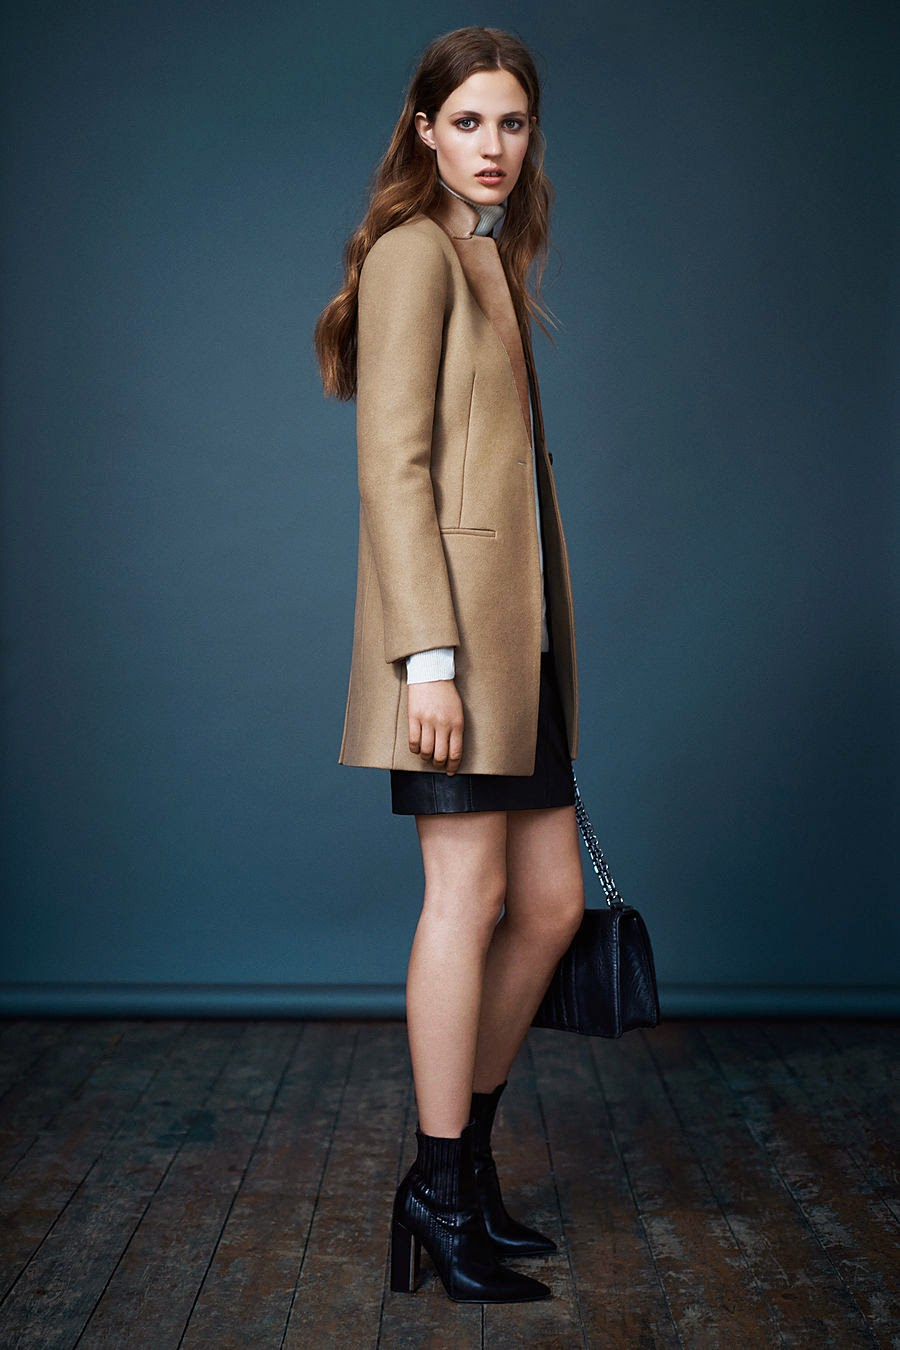 all saints aw october lookbook 2014. camel coat. leather skirt. heel boots. chain strap bag.